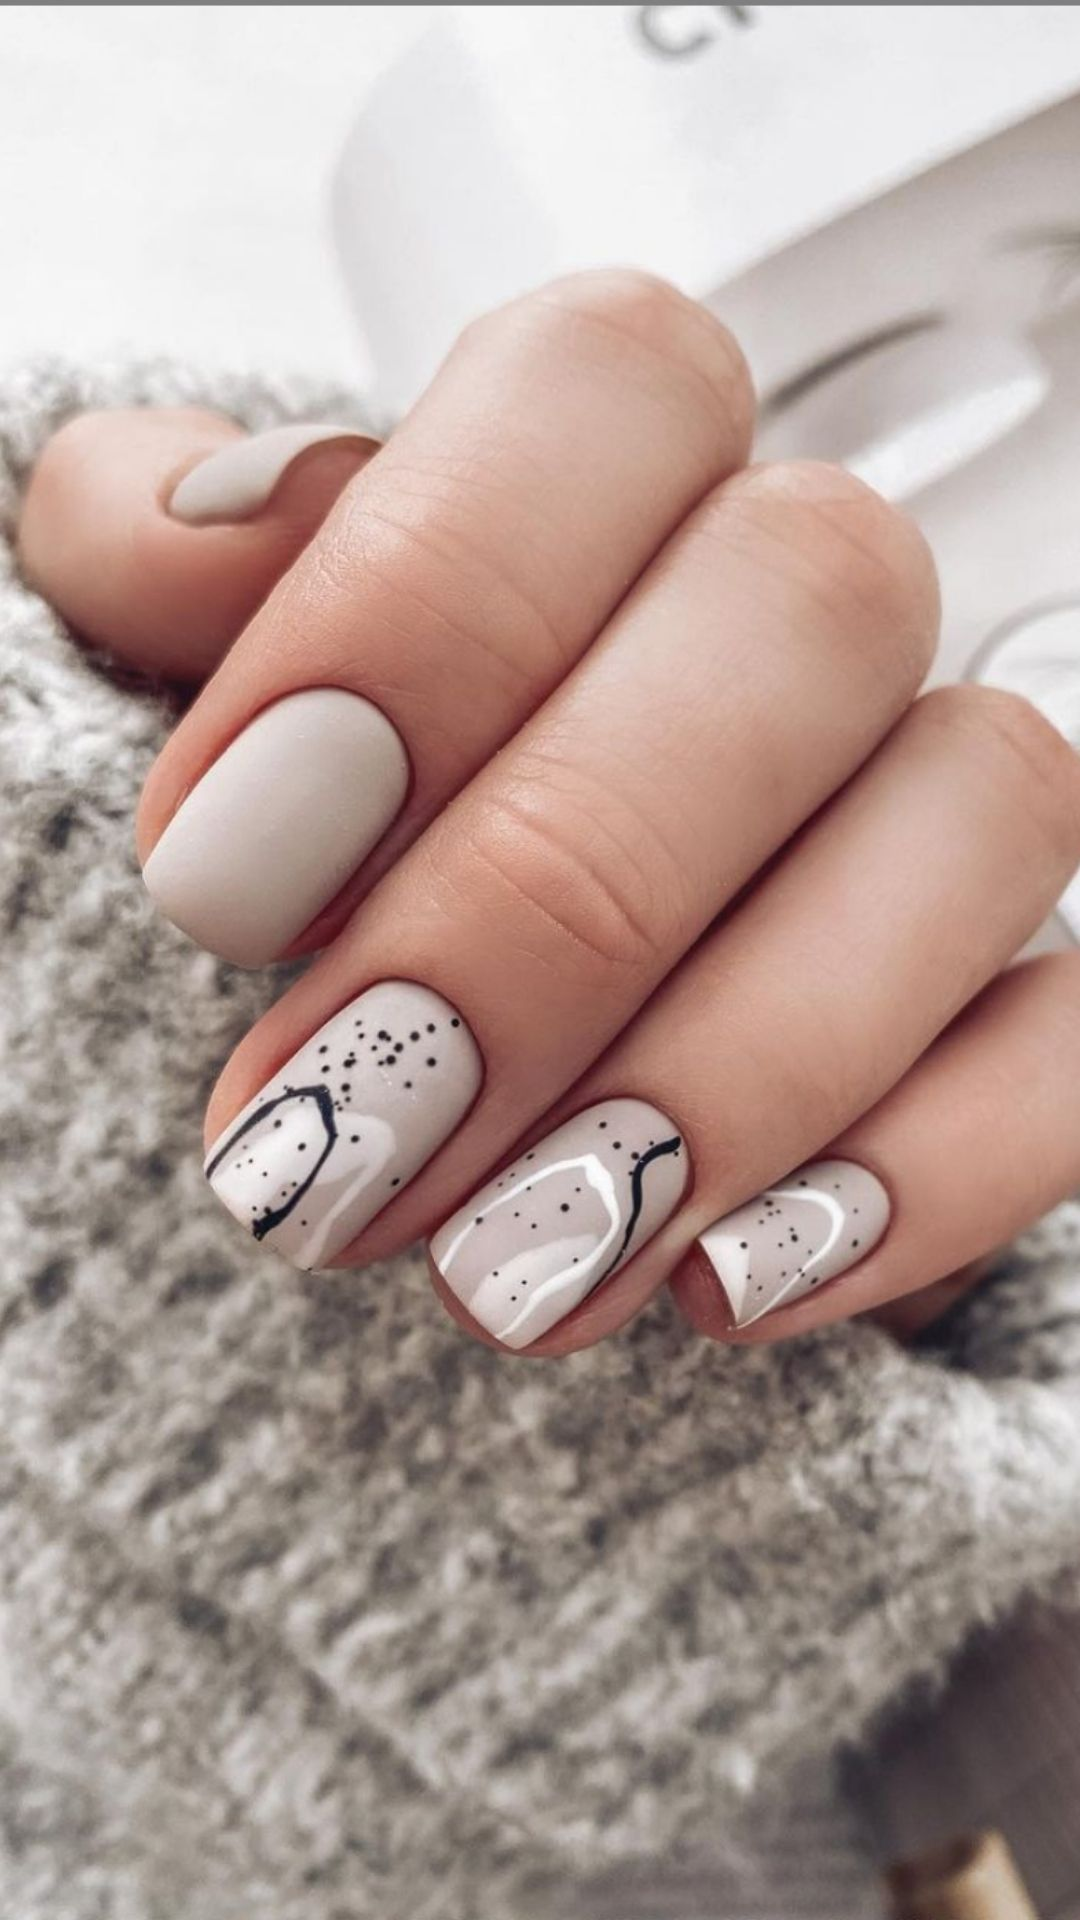 Best short square acrylic nails design to rock your Fall days 2021